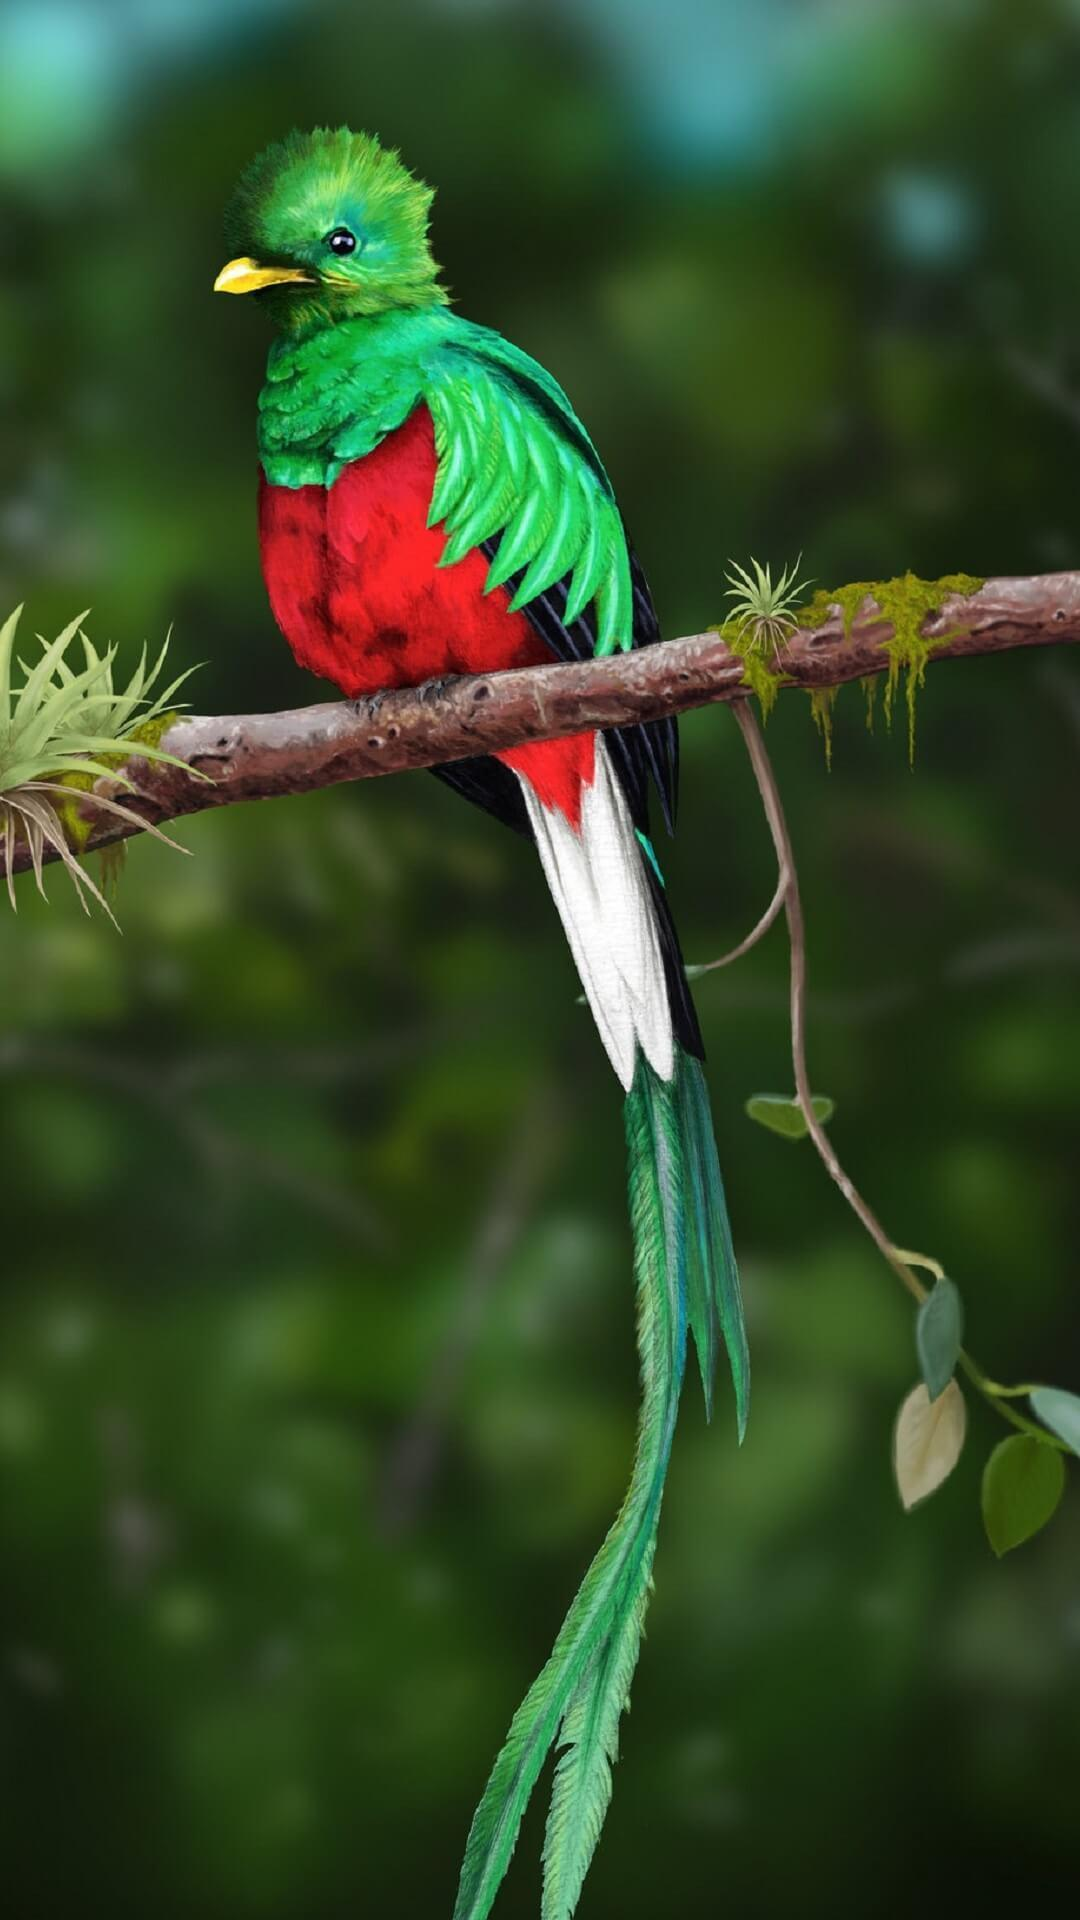 Quetzal Wallpapers HD for Android - APK Download